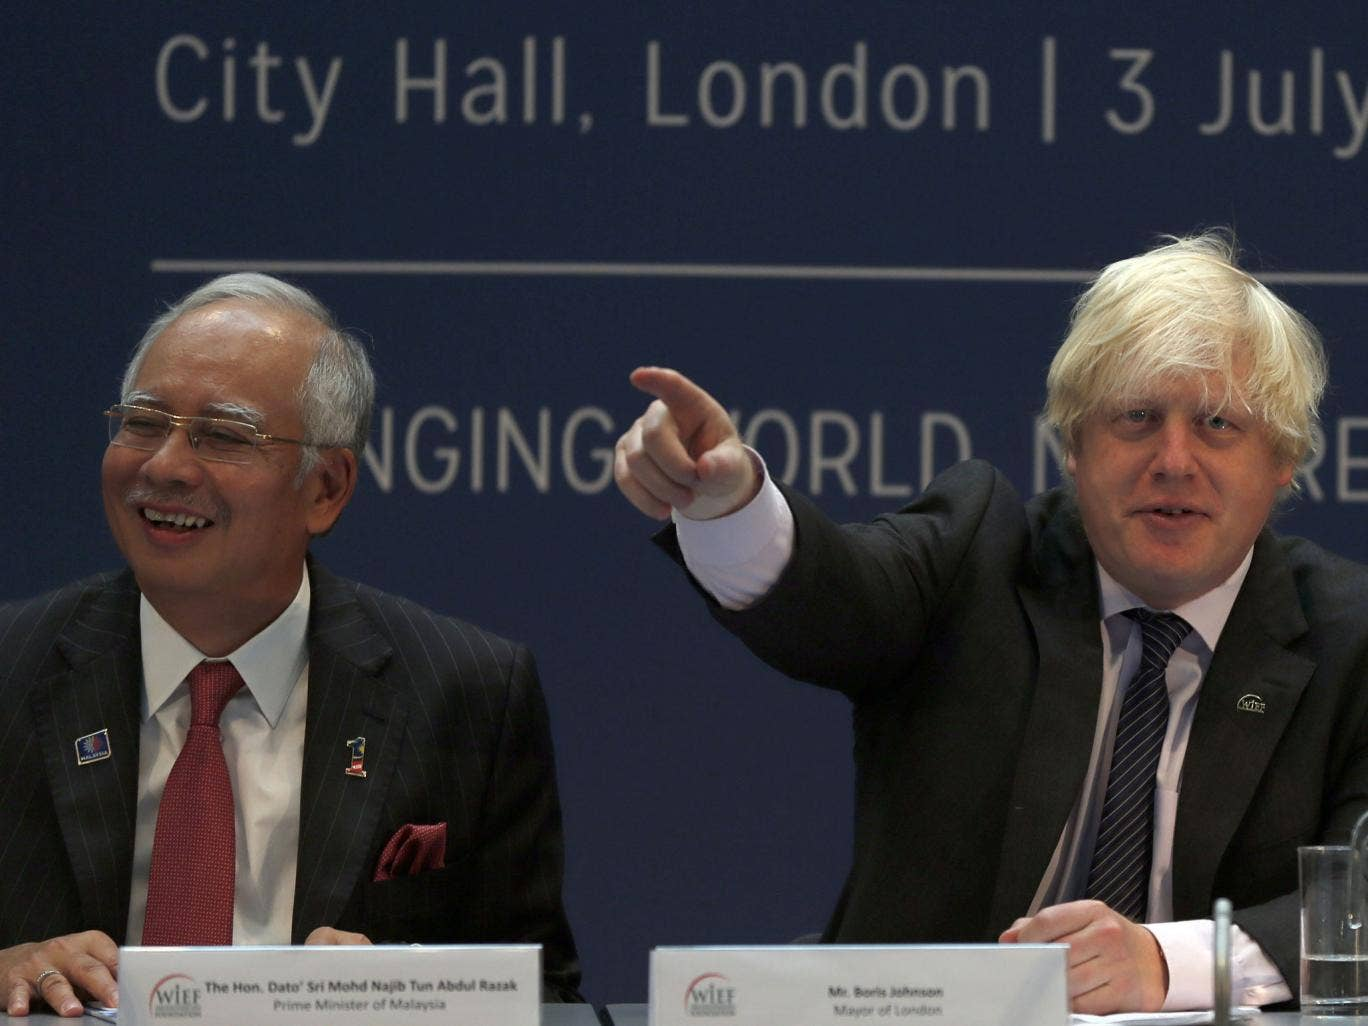 Johnson made the remark as he was speaking alongside the Malaysian prime minister Najib Razak, pictured left